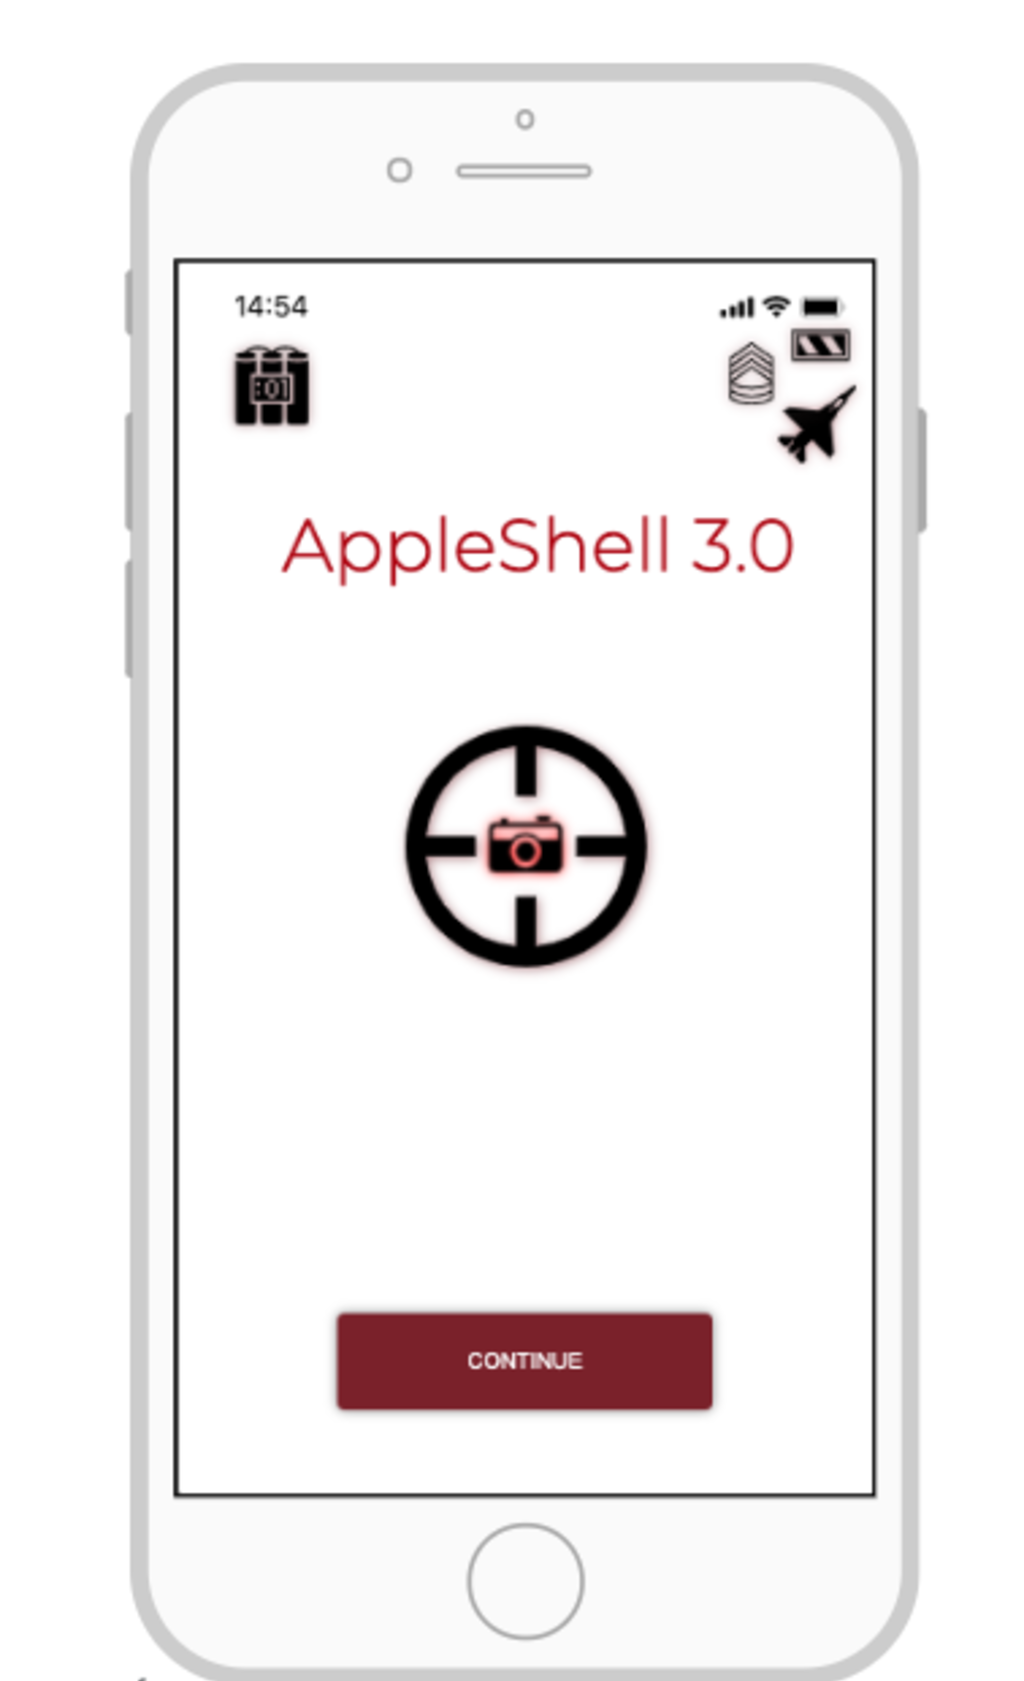 APPLE Shell 3.0 home screen